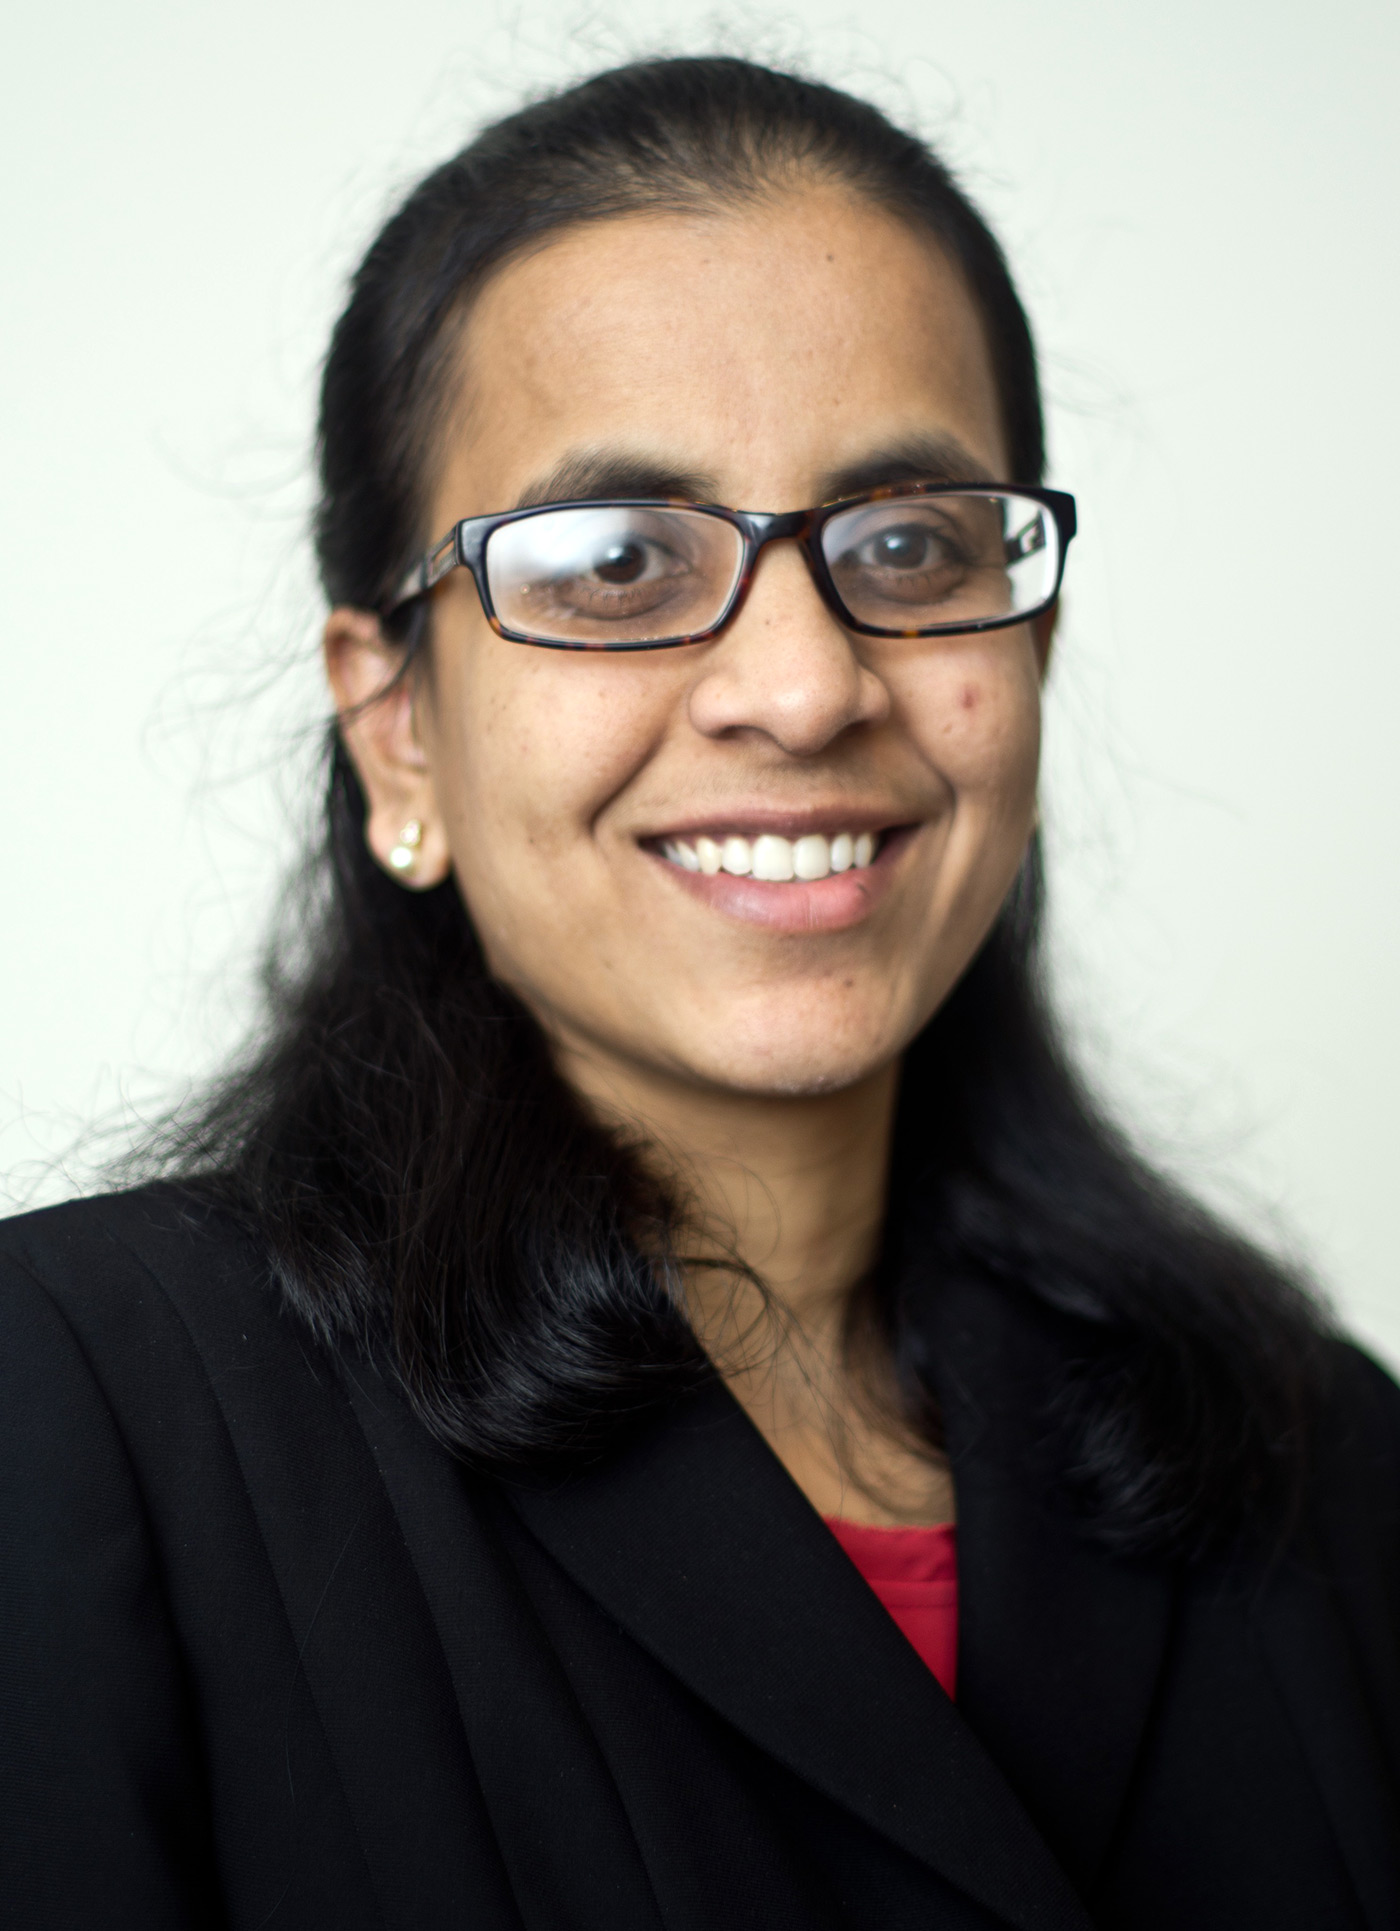 Shilpa Bhupathiraju, Ph.D.